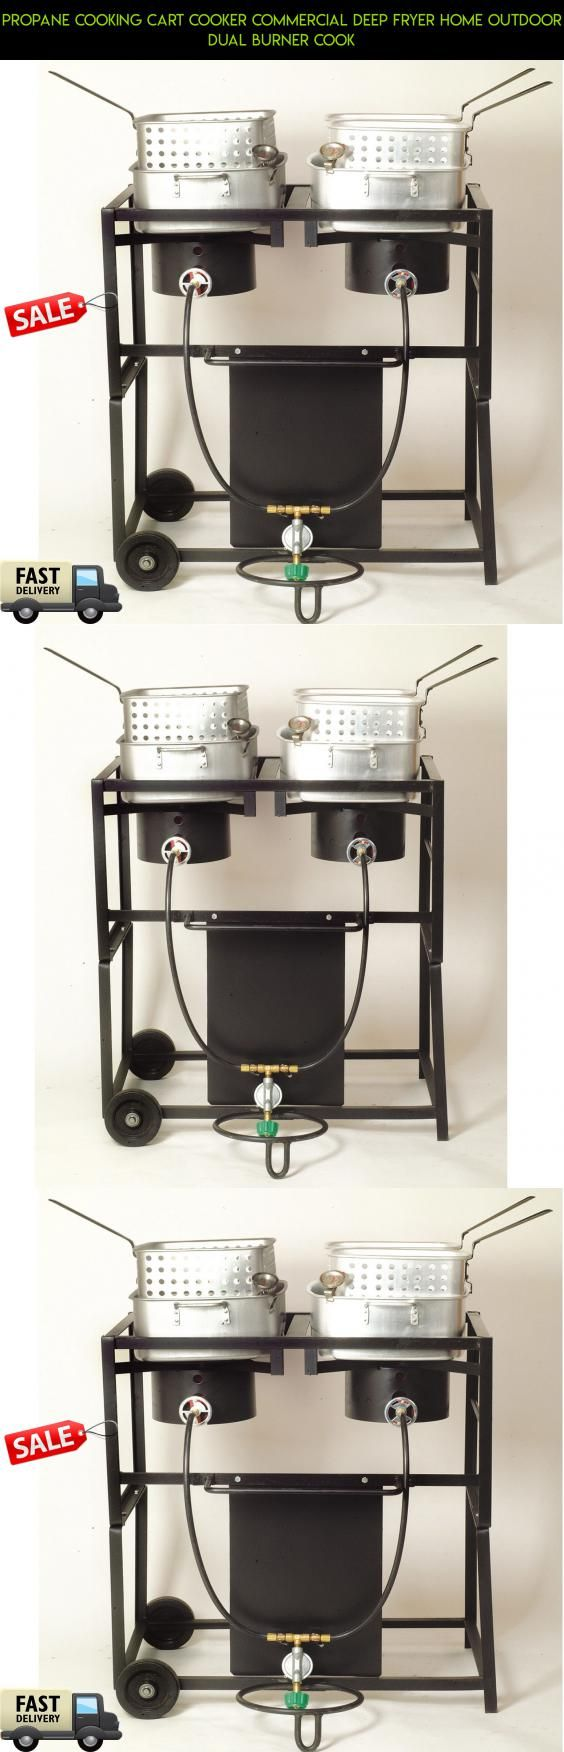 Propane Cooking Cart Cooker Commercial Deep Fryer Home Outdoor Dual Burner Cook #shopping #cart #gadgets #camera #drone #cooking #outdoor #parts #products #fpv #plans #tech #technology #racing #kit